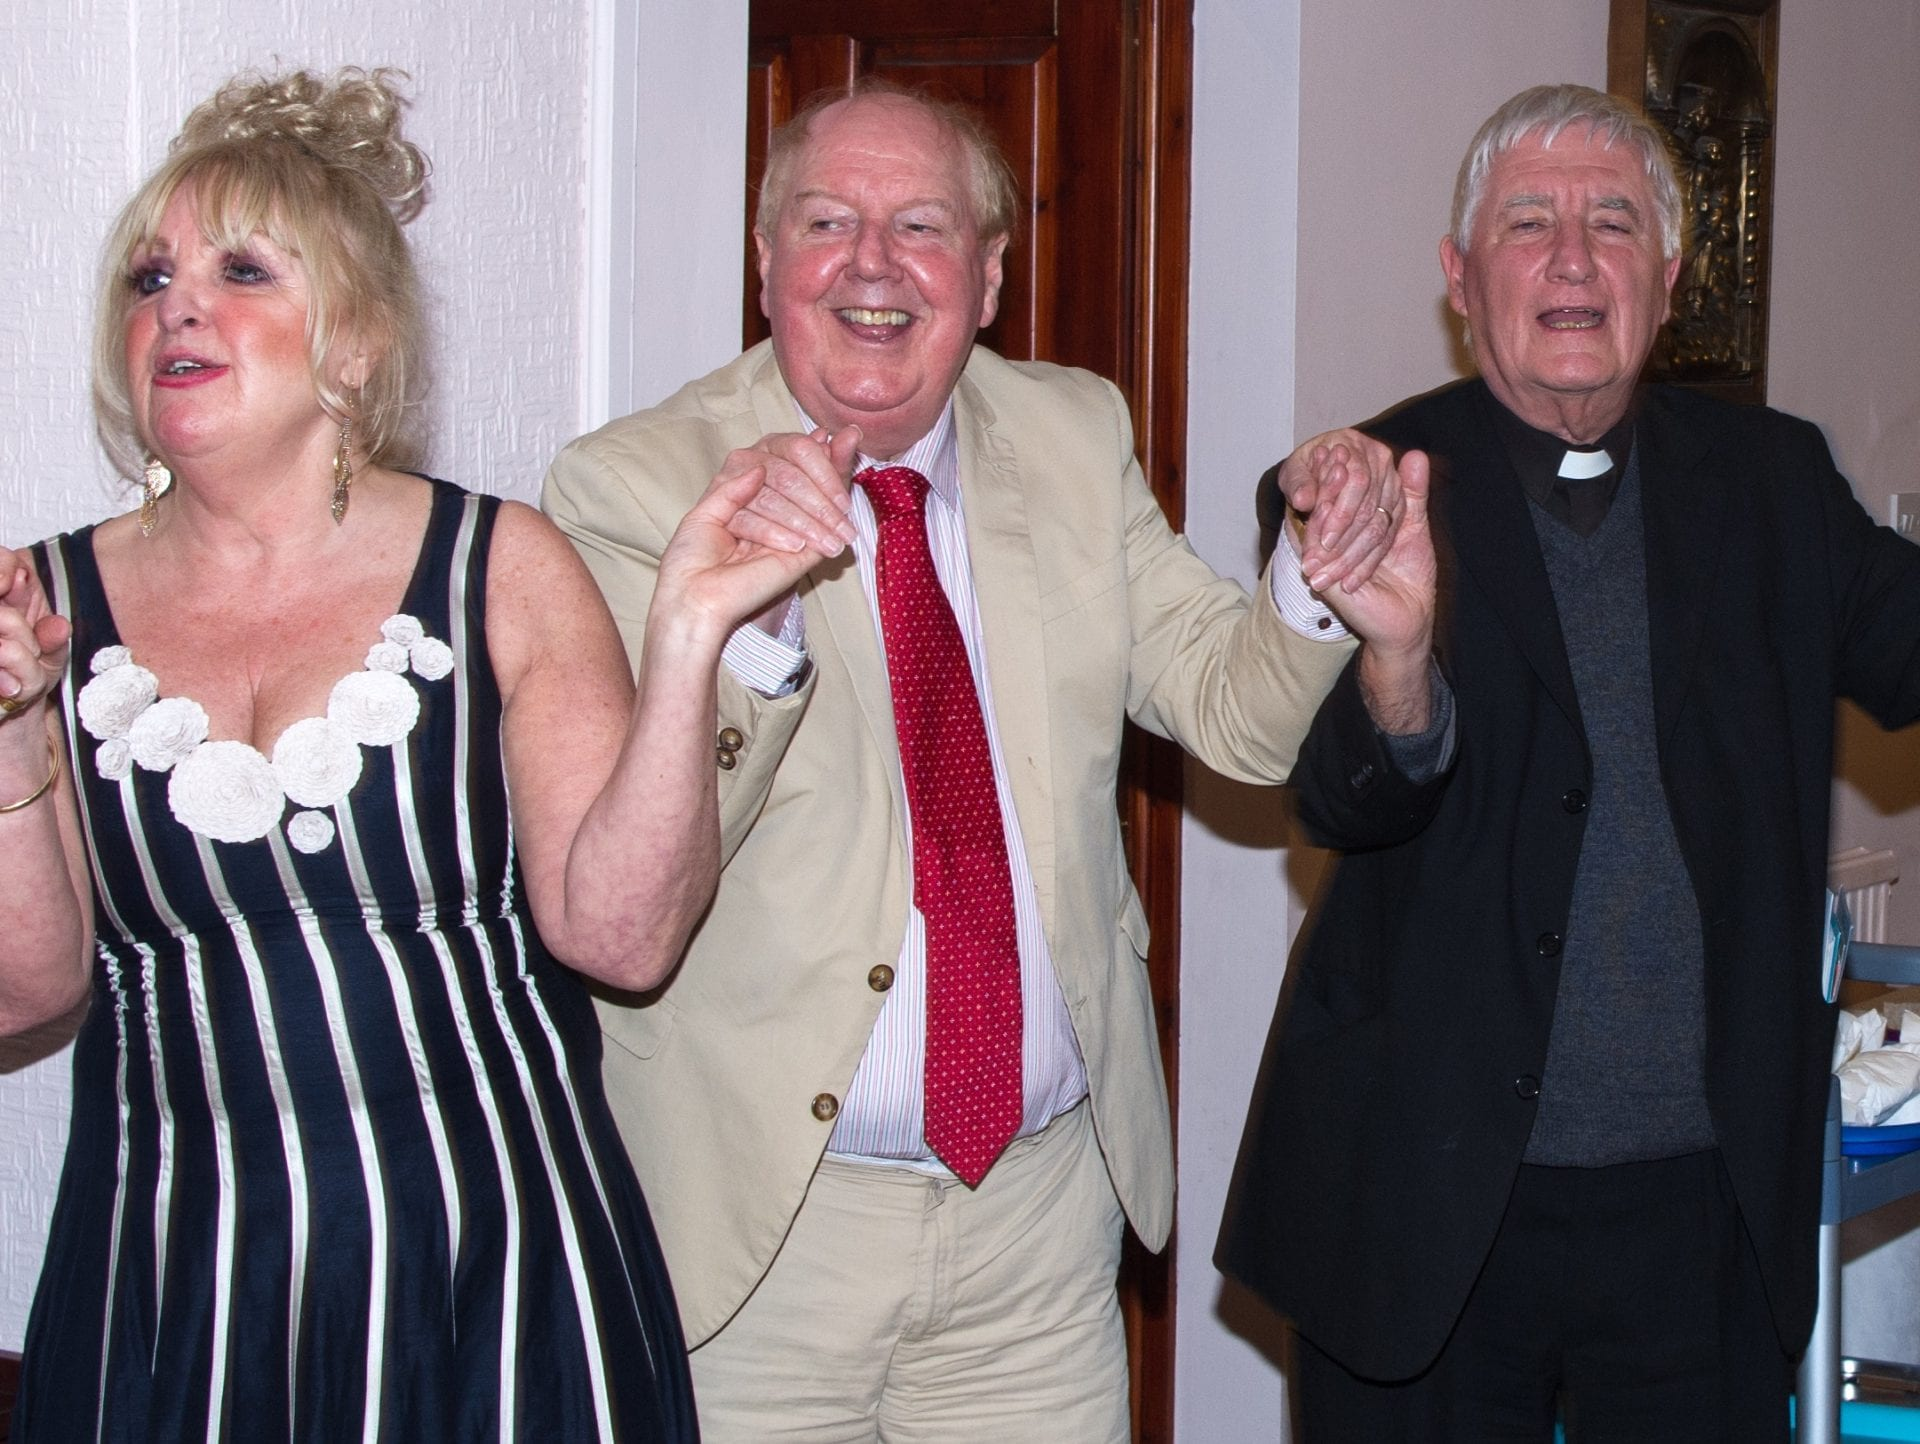 Jimmy Cricket with wife May and Fr David Lupton